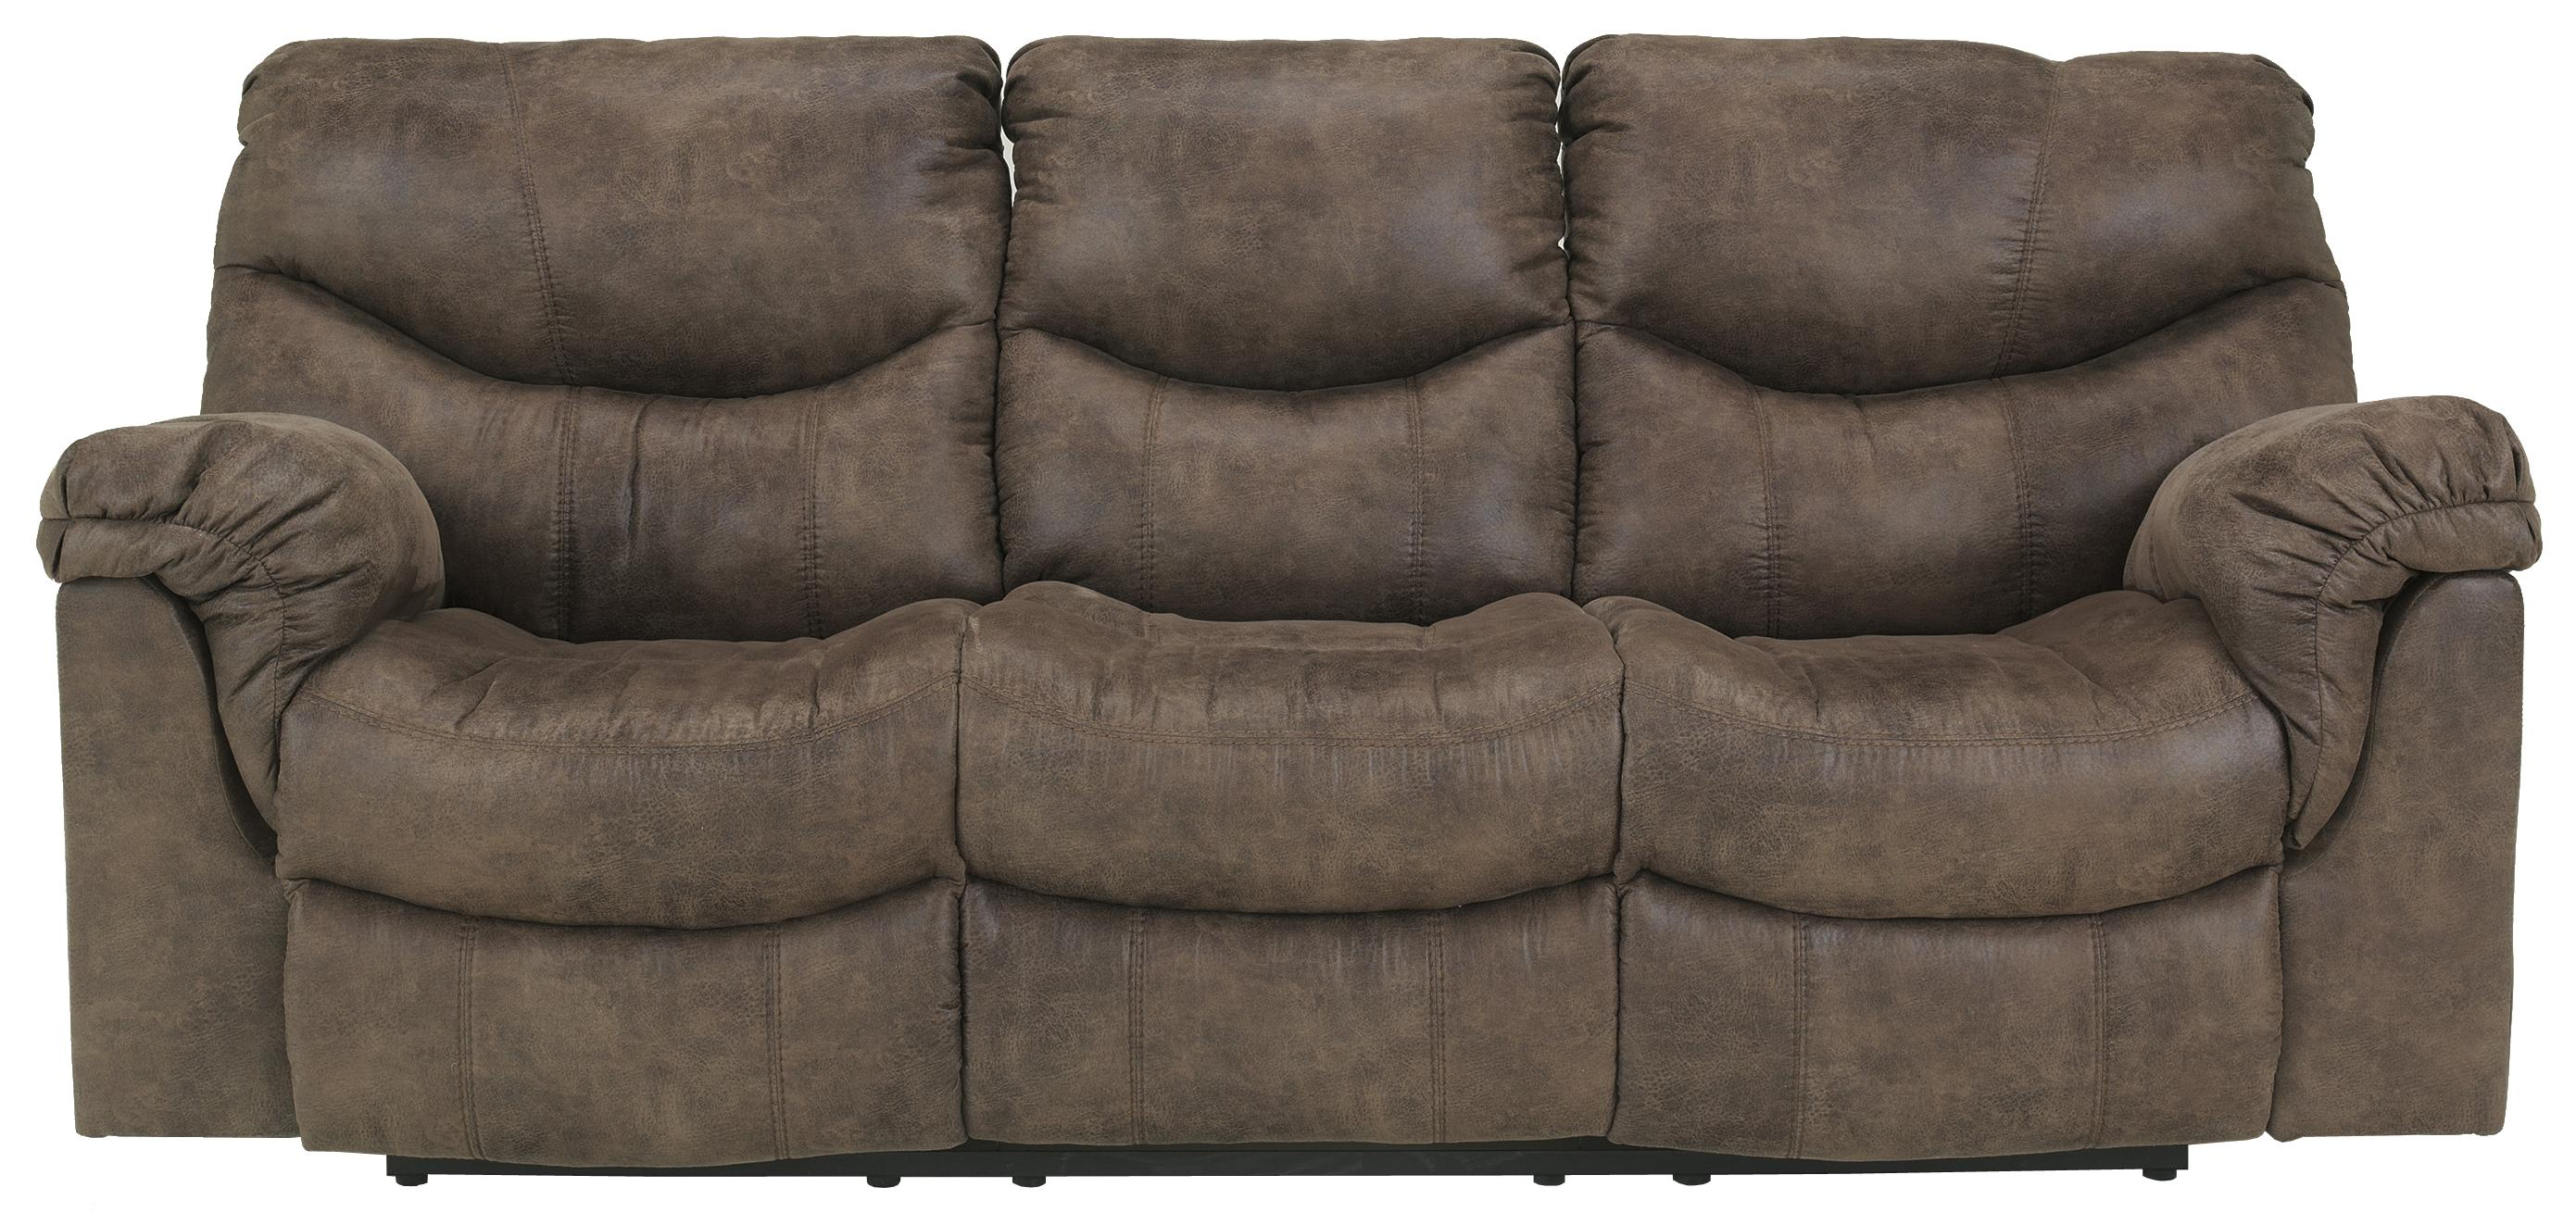 Signature Design by Ashley Alzena - Gunsmoke Reclining Power Sofa - Item Number: 7140087